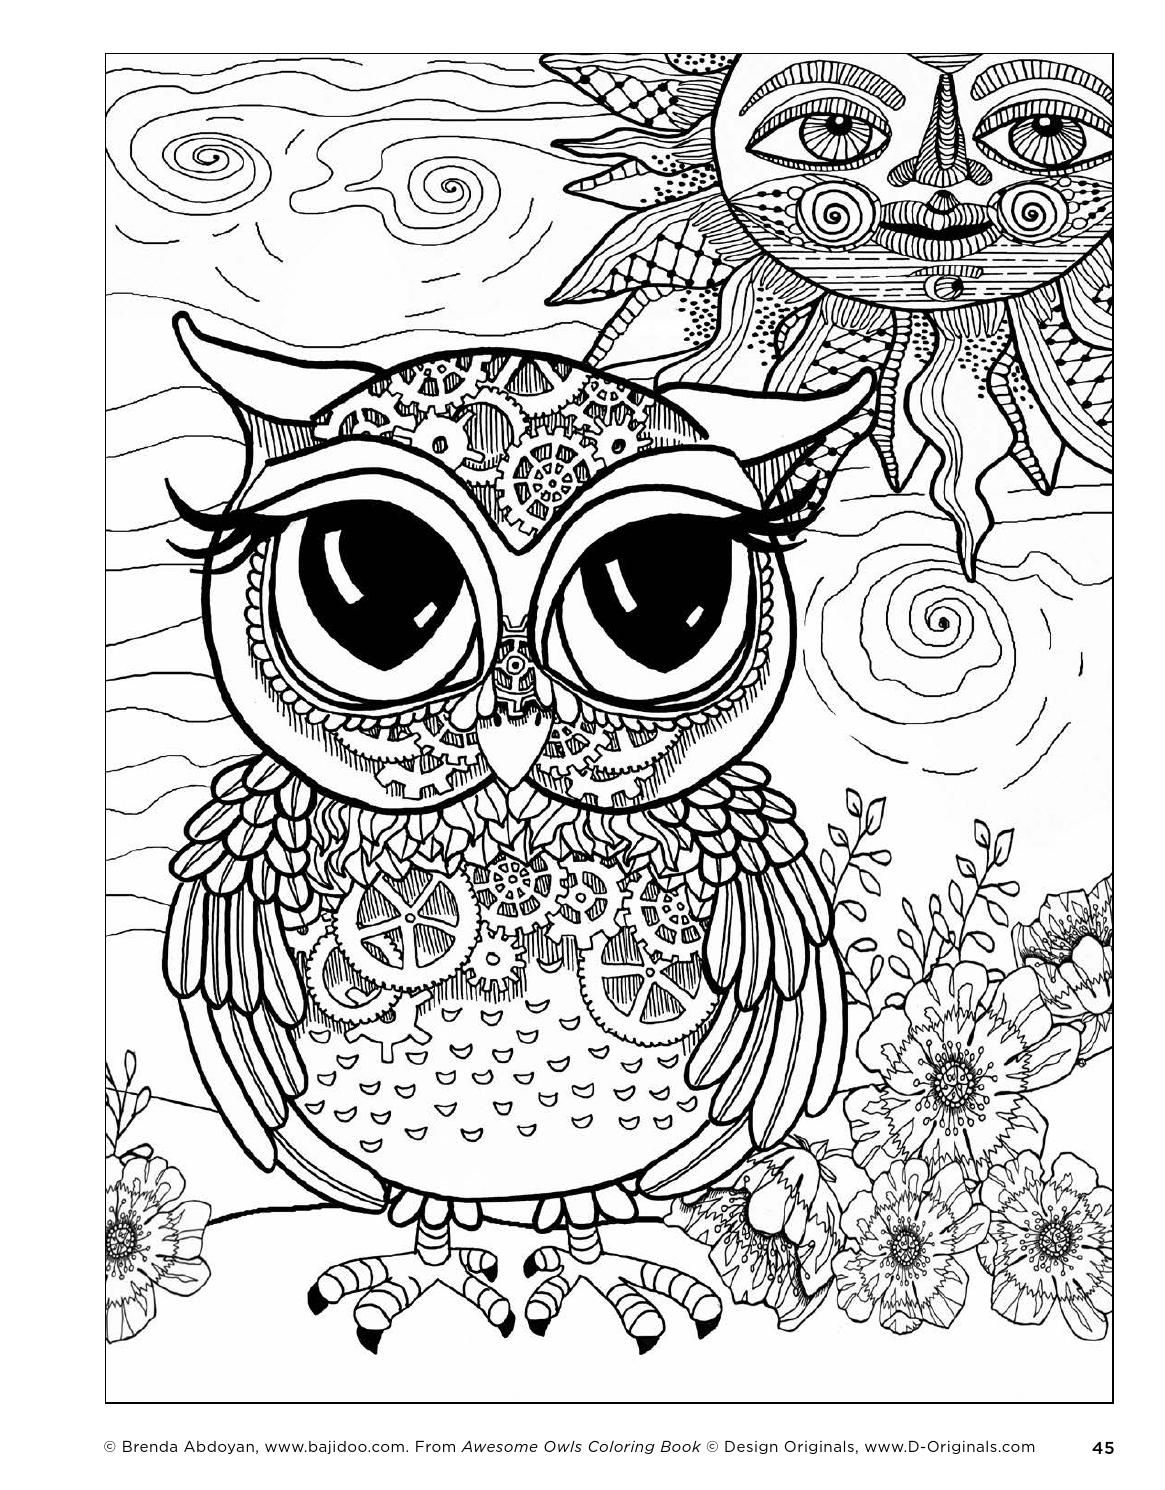 Awesome Owls Coloring Book Owl Coloring Pages Owl Pictures To Color Animal Coloring Pages